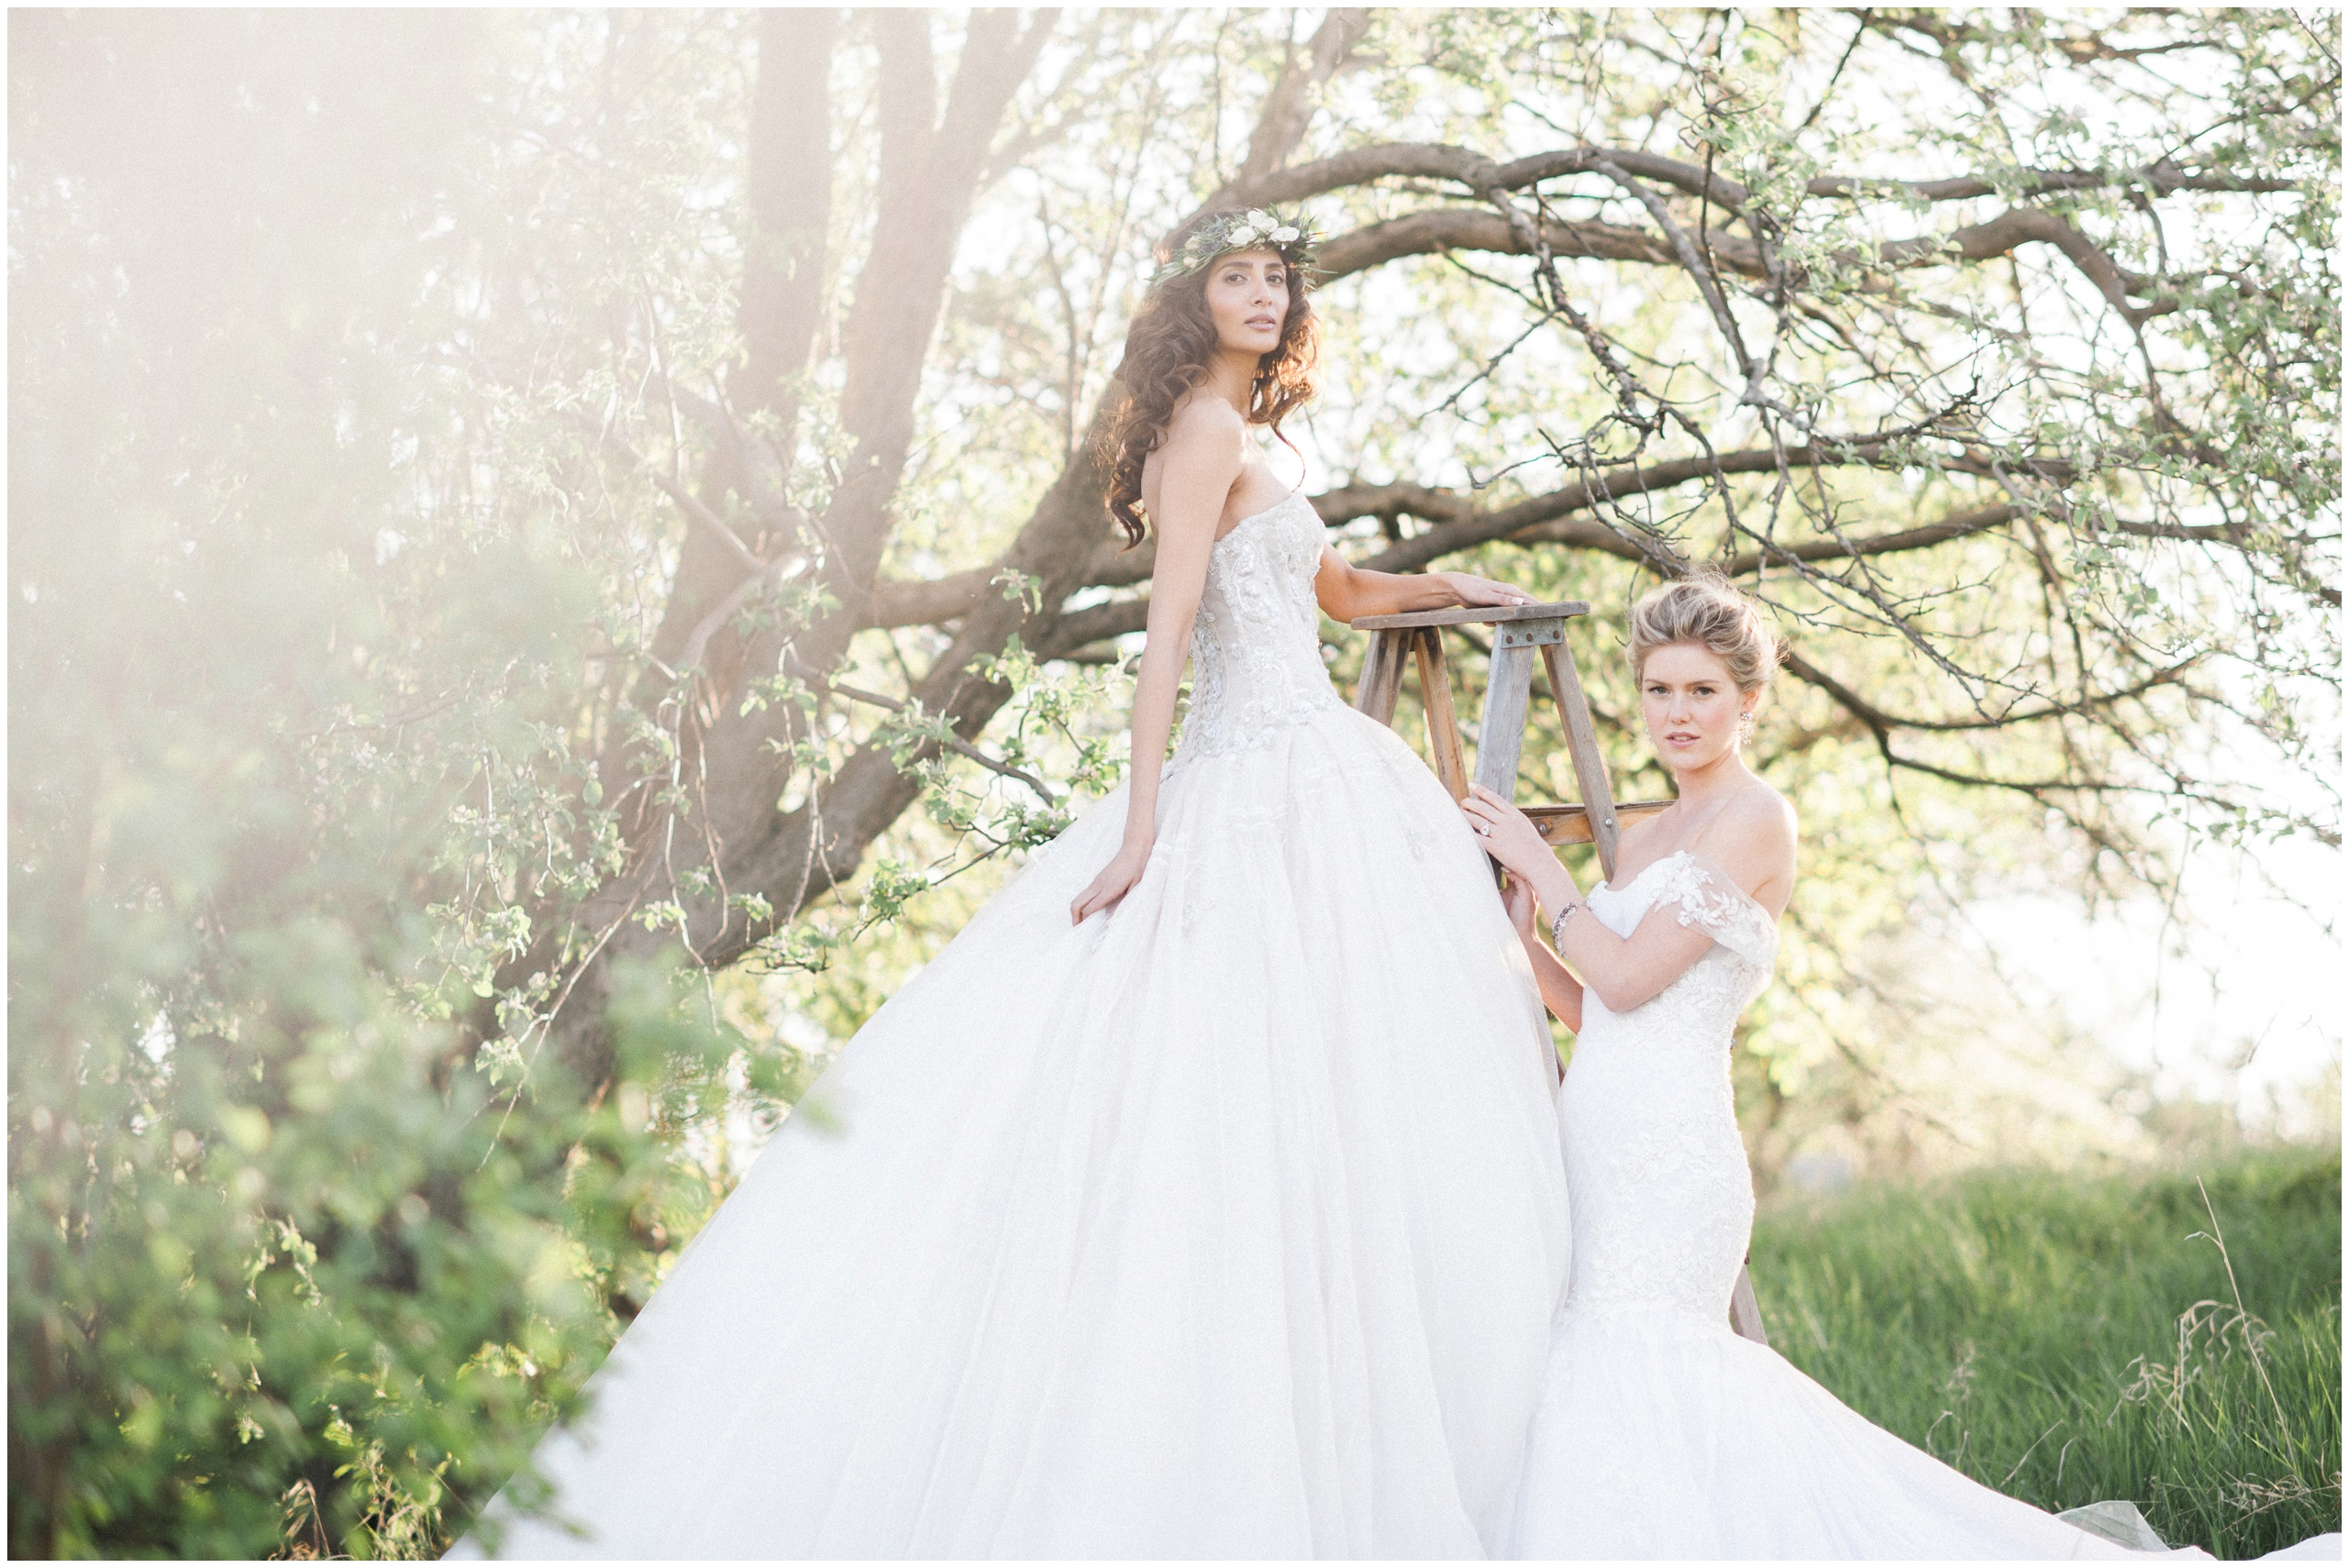 Spring Wedding Inspiration- Brides in Ines Di Santo gowns.